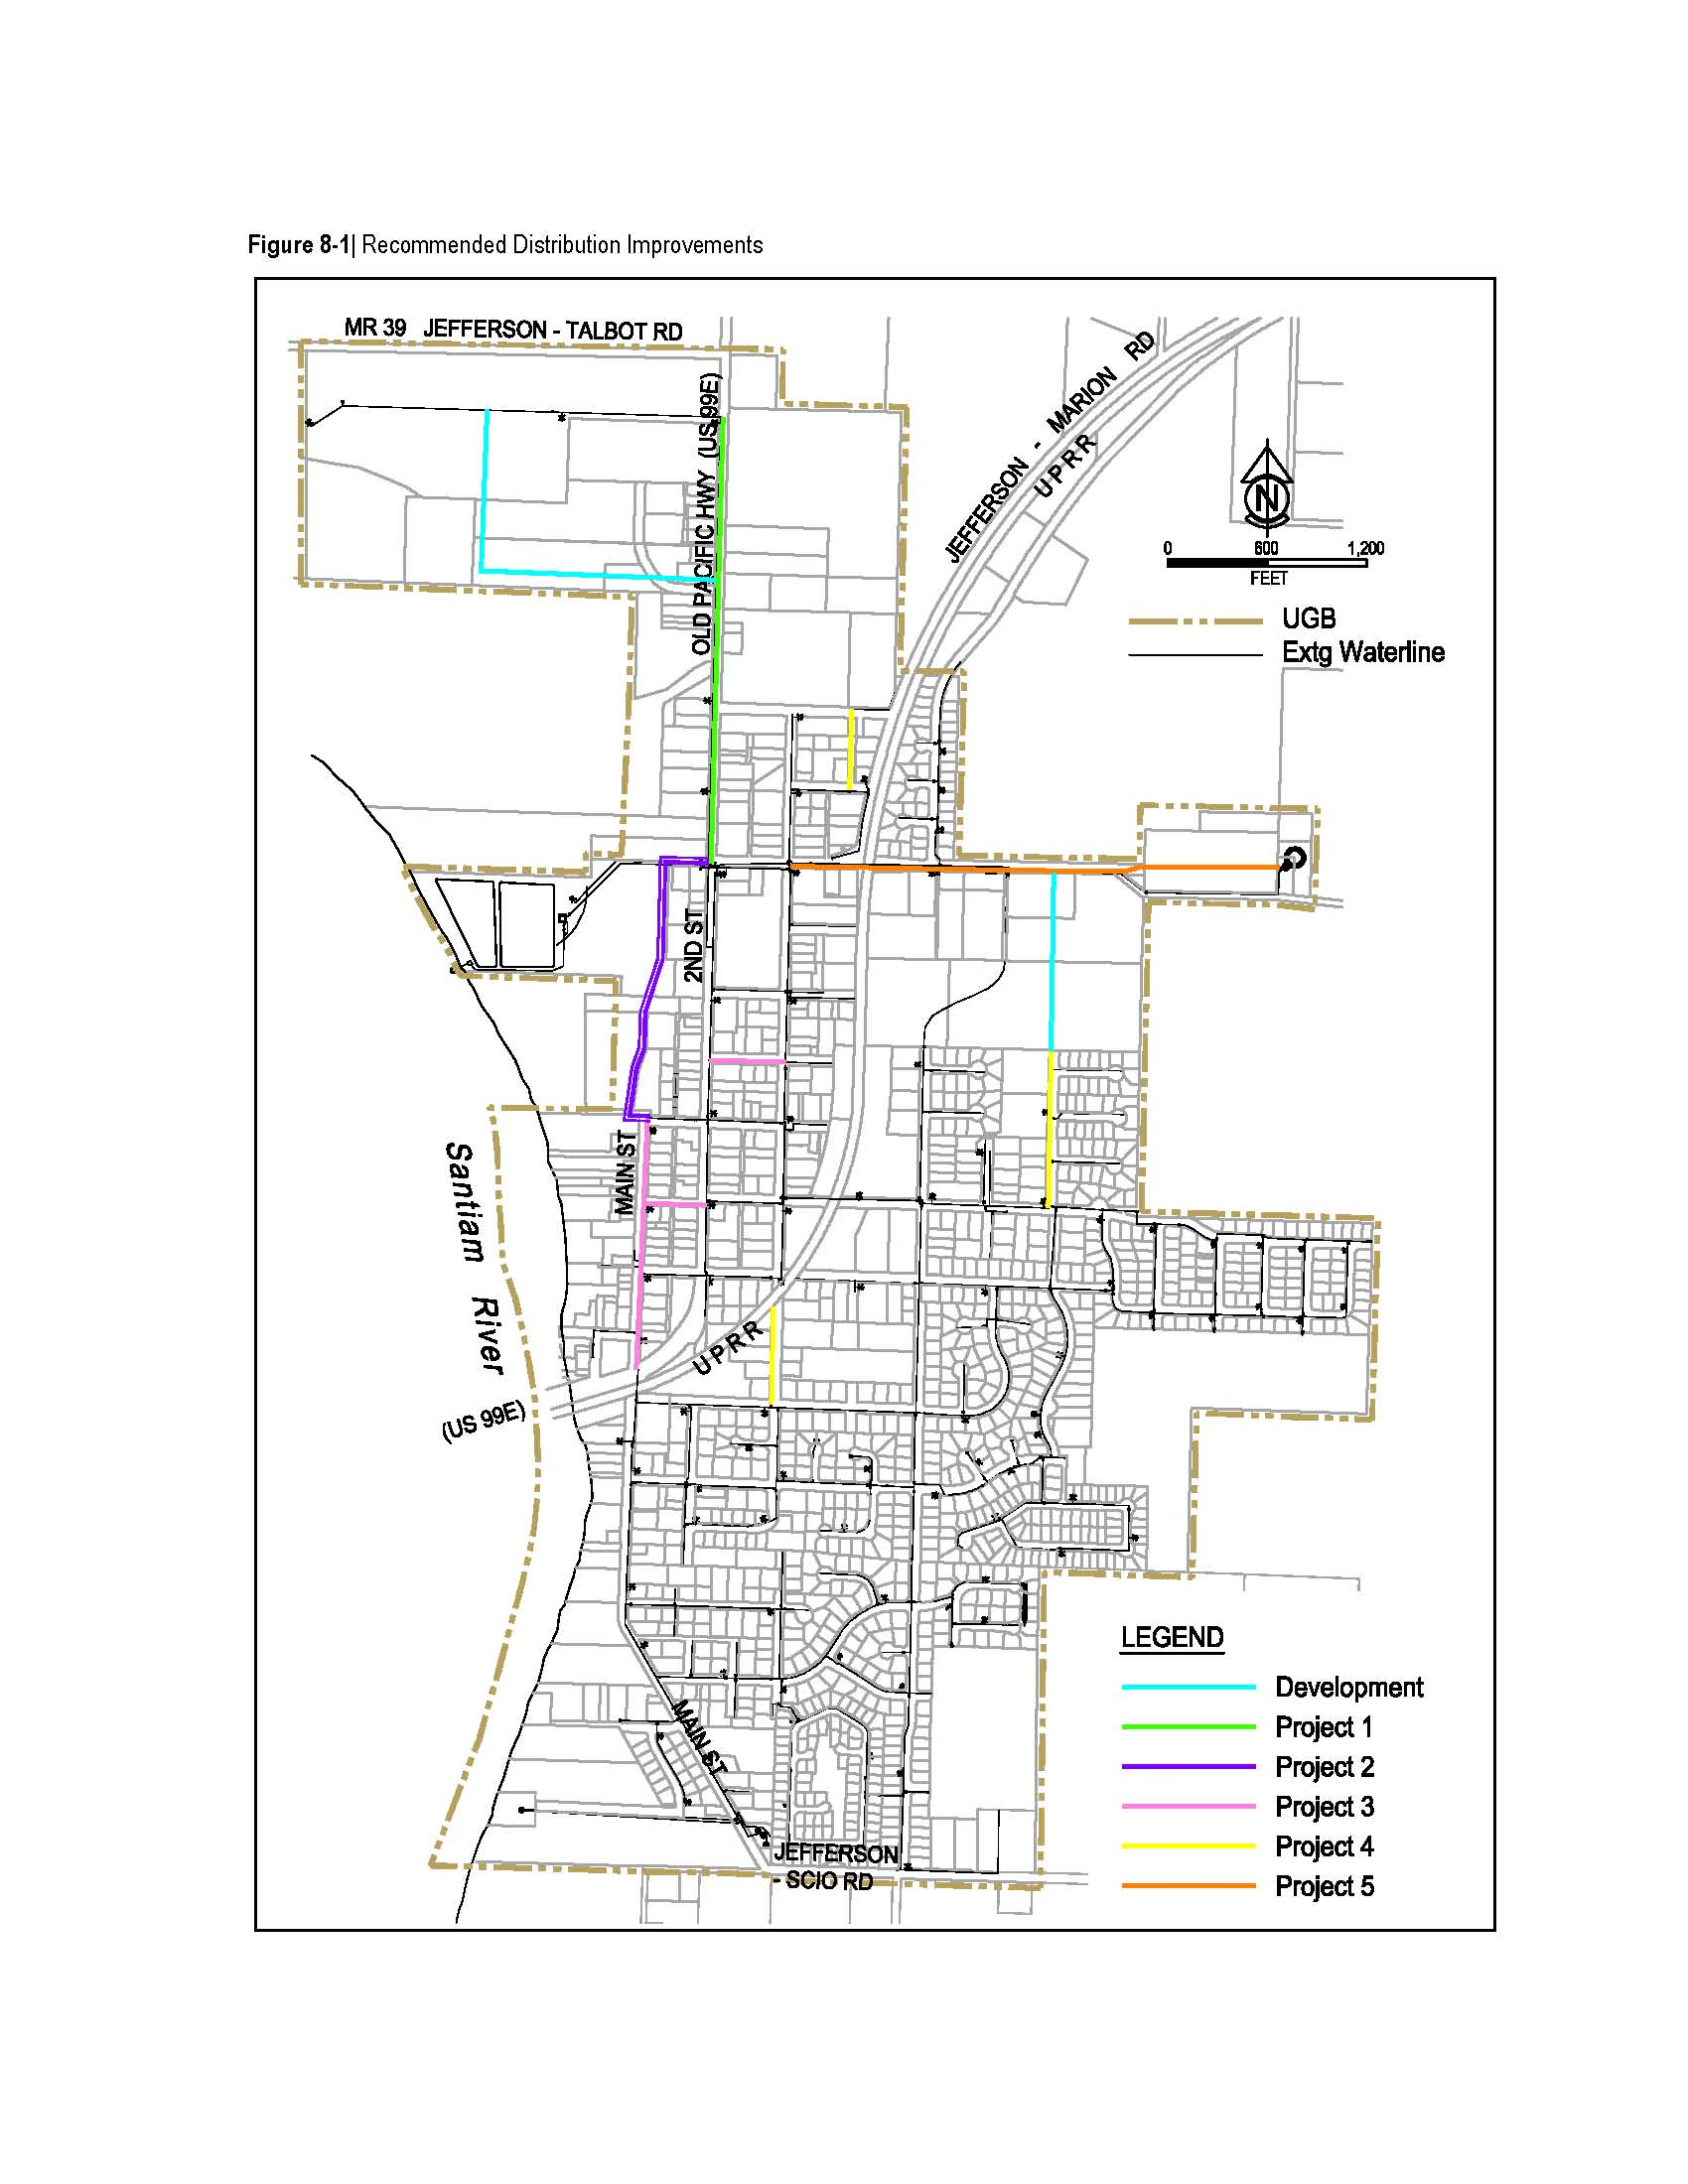 Utility master planning project 1 westech engineering inc in some cases the planning effort will also include rate and sdc studies leak detection studies and the preparation of water management and conservation publicscrutiny Gallery